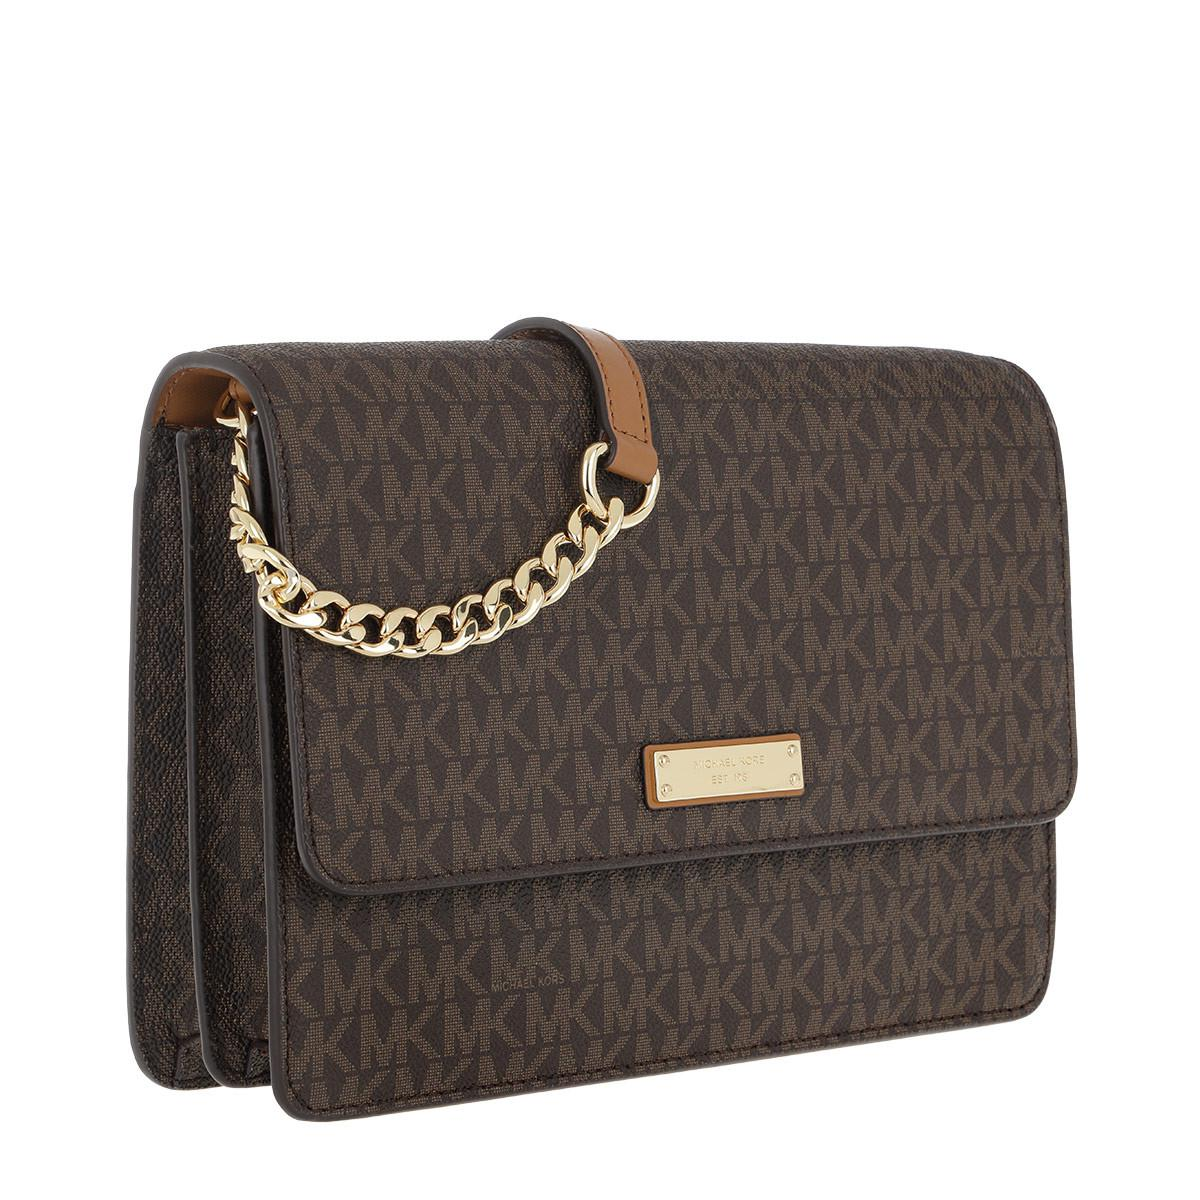 Michael Kors Synthetic Lg Gusset Crossbody Bag Brown